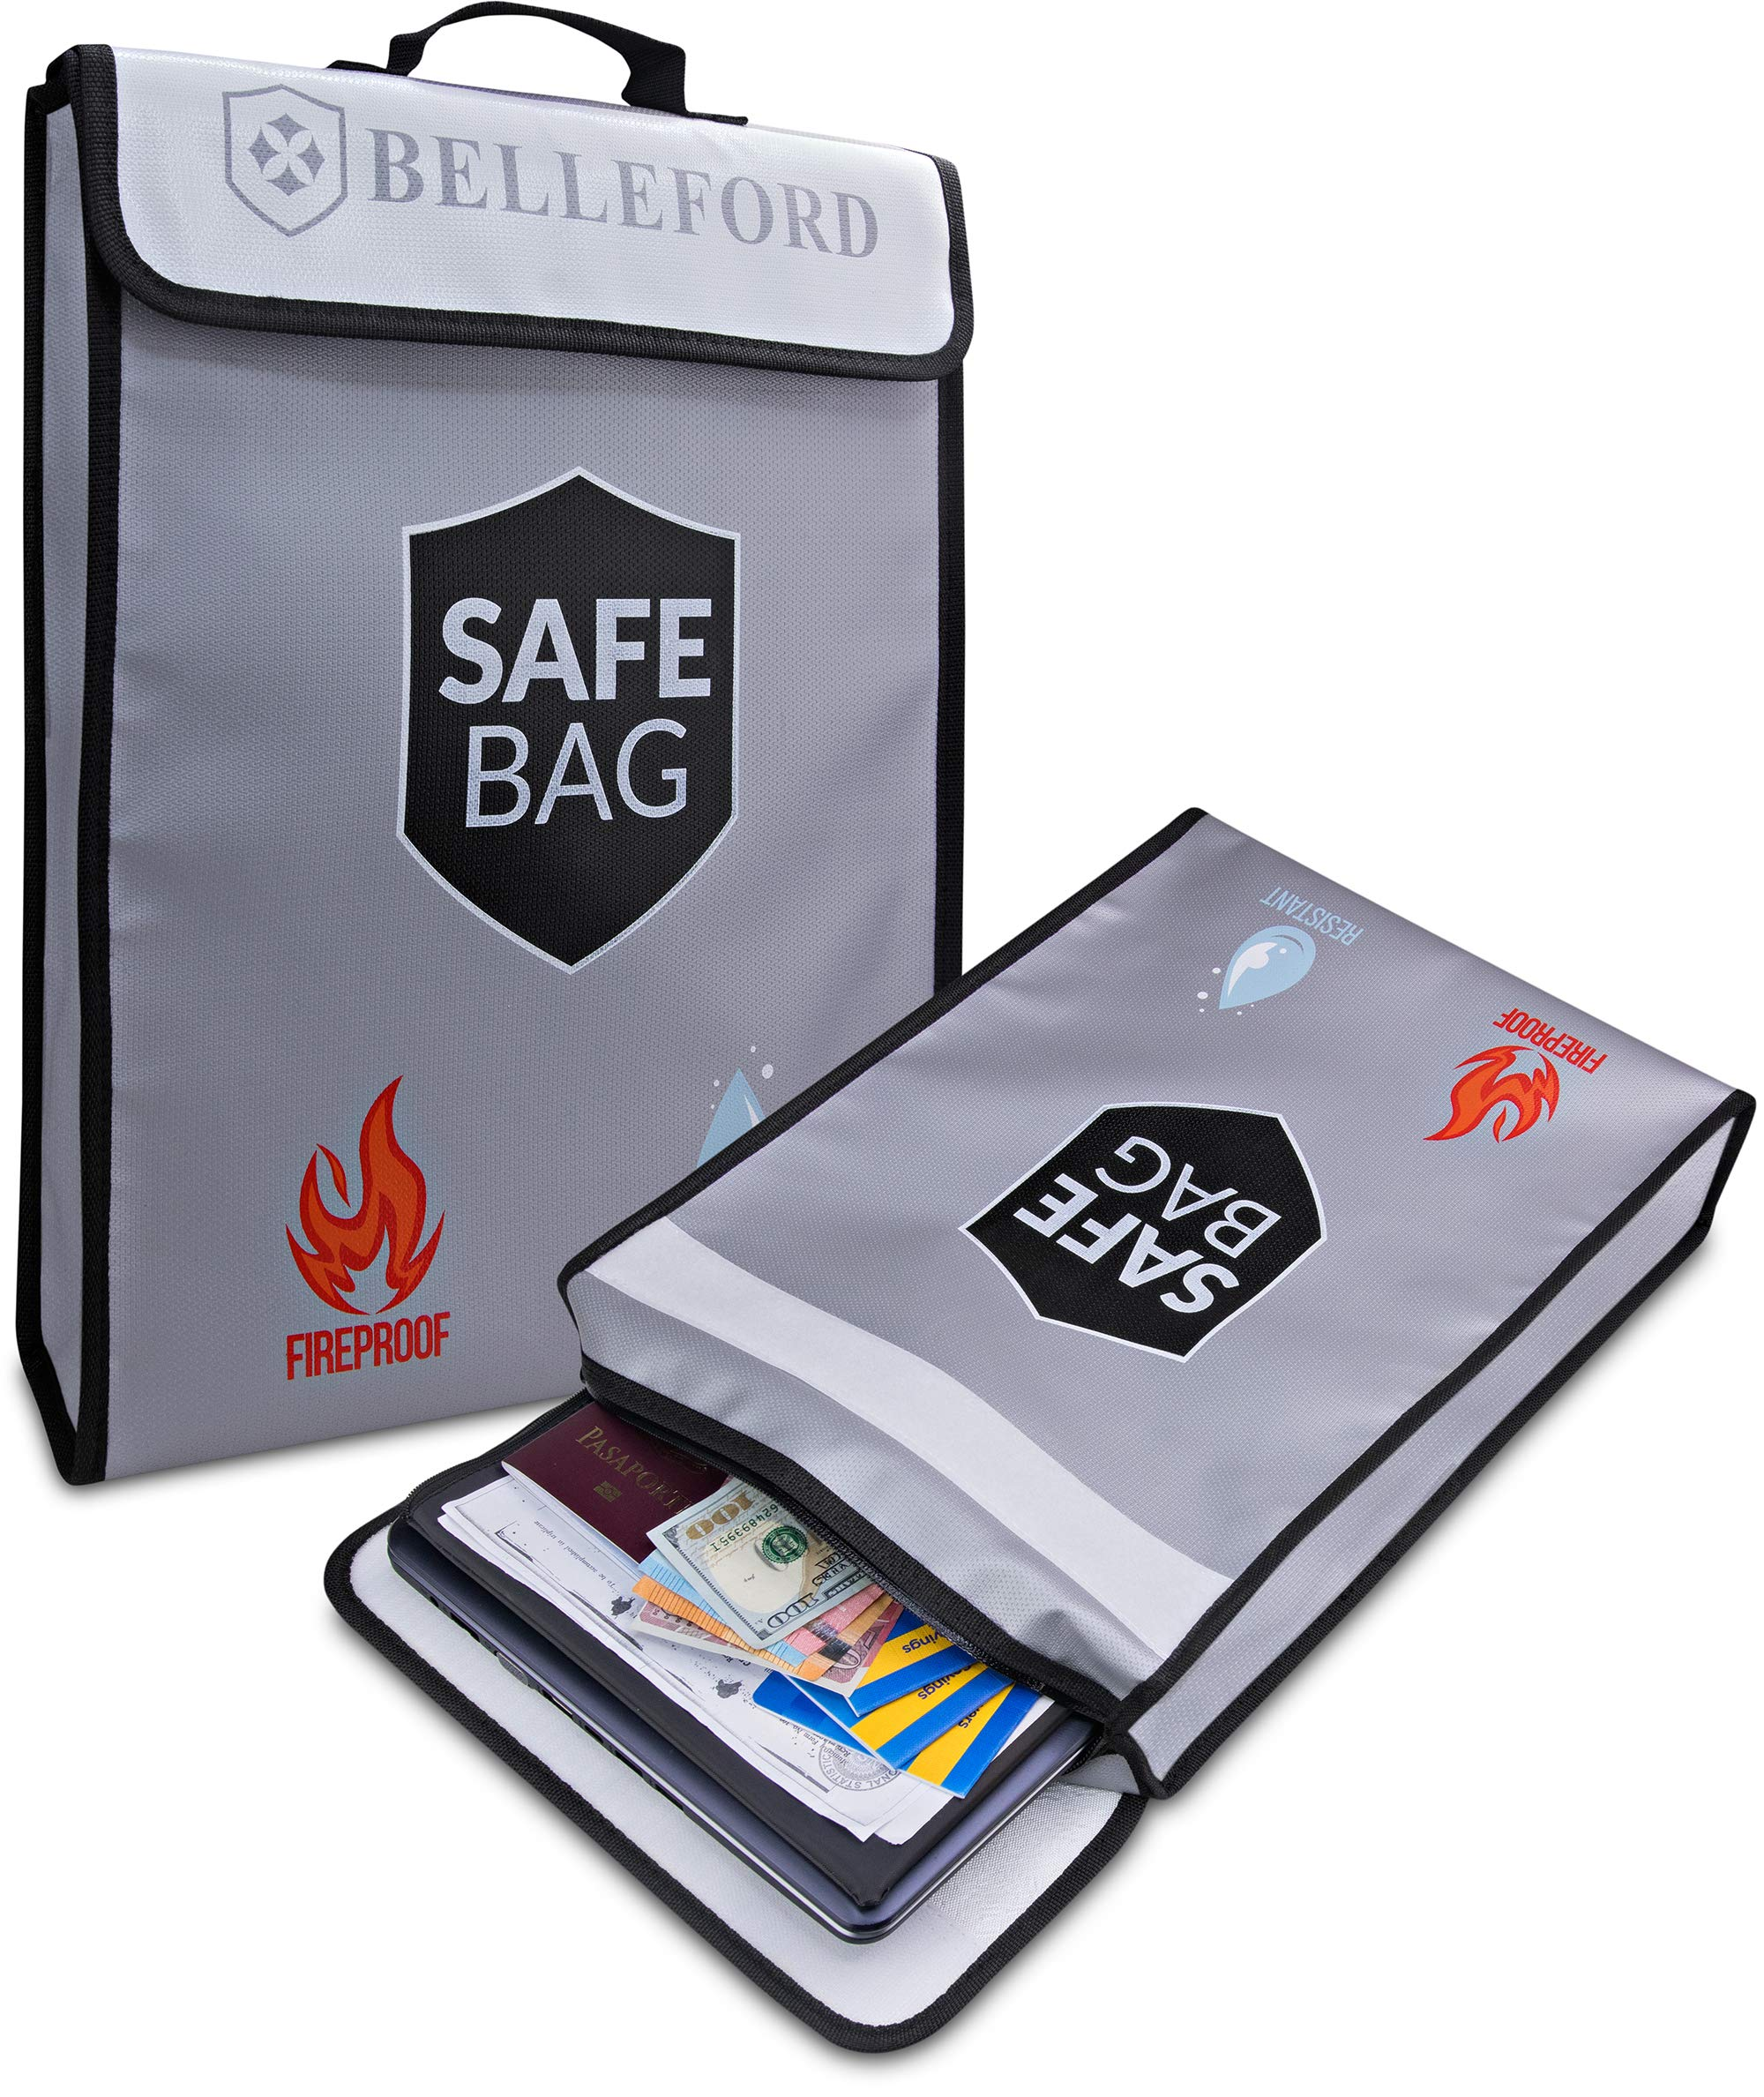 Fireproof Document Bags - Fire Safe Box Bag - Jewelry Money Cash File Storage Holder Boxes Organizer Tool - Hide Key Dollar Items in Small Wall Safes for Home Fires - Hidden Photo Zipper Binder Tote